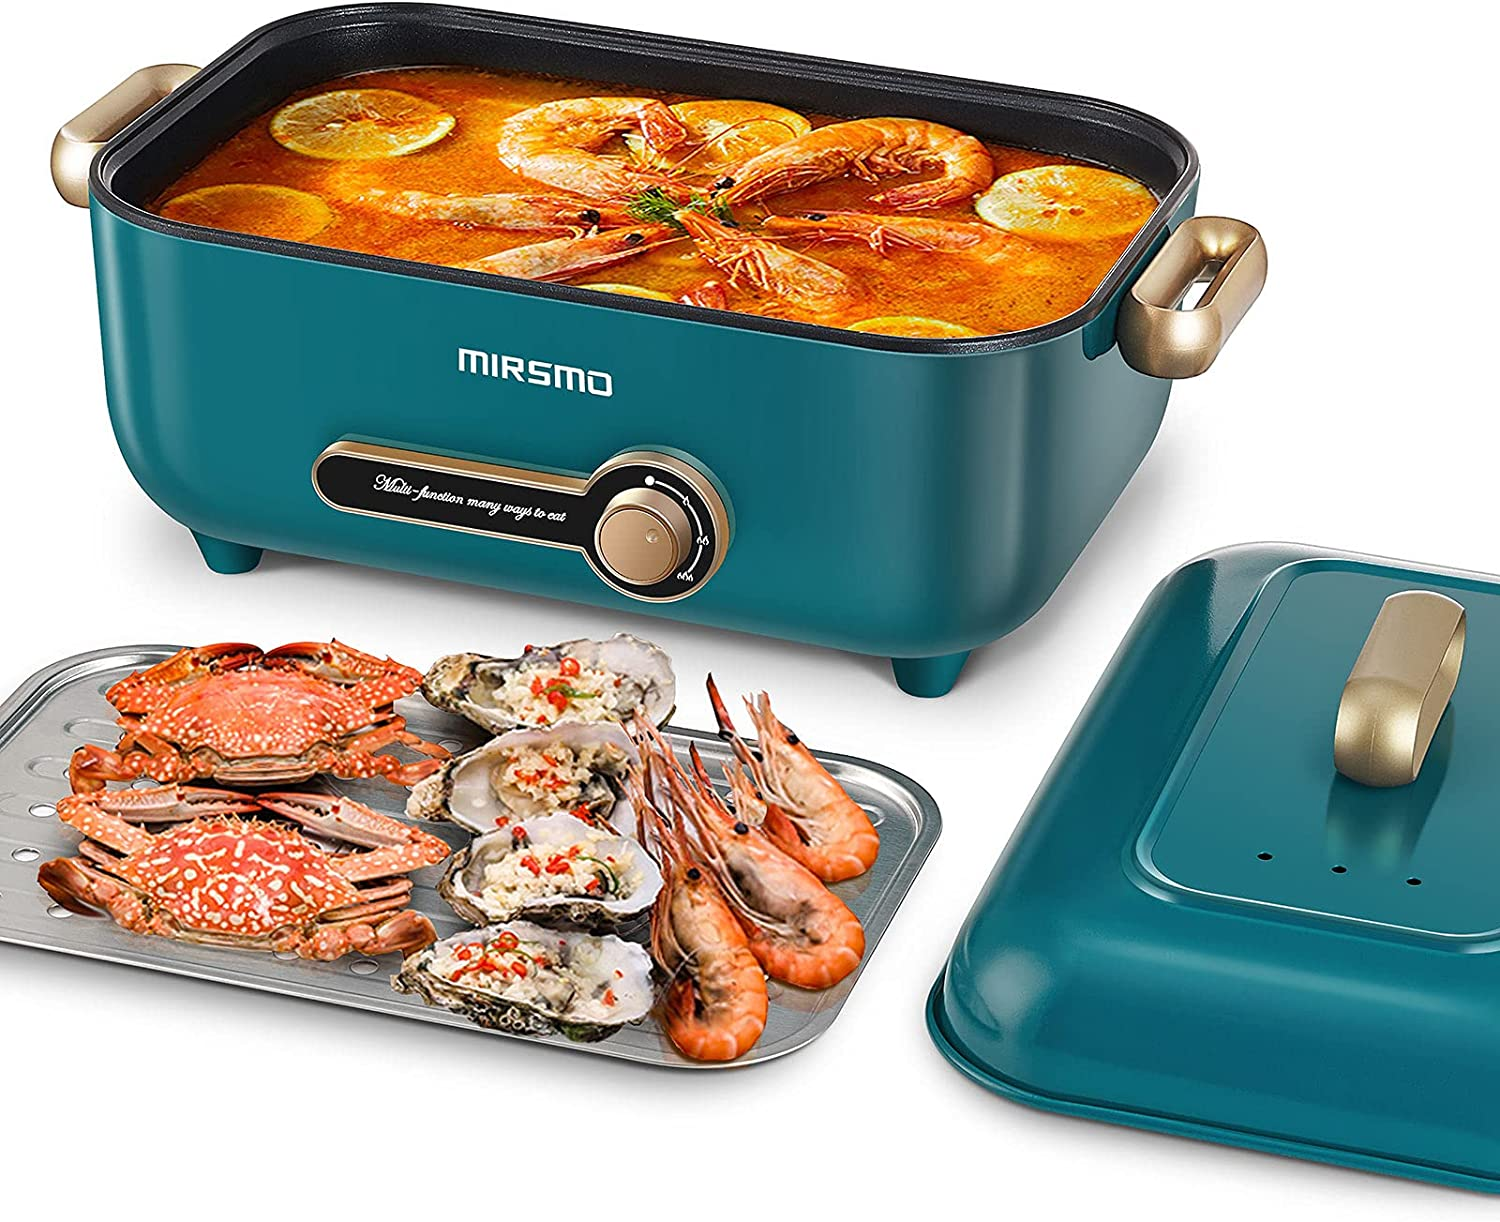 Mirsmo Electric Hot Pot 4L with Stainless Steel Steaming Rack, 3 Temperature Control Multifunction Food Steamer, 3.4-inch Nonstick Electric Skillet for Sauté, Stew and Grill, Deep Electric Frying Pan